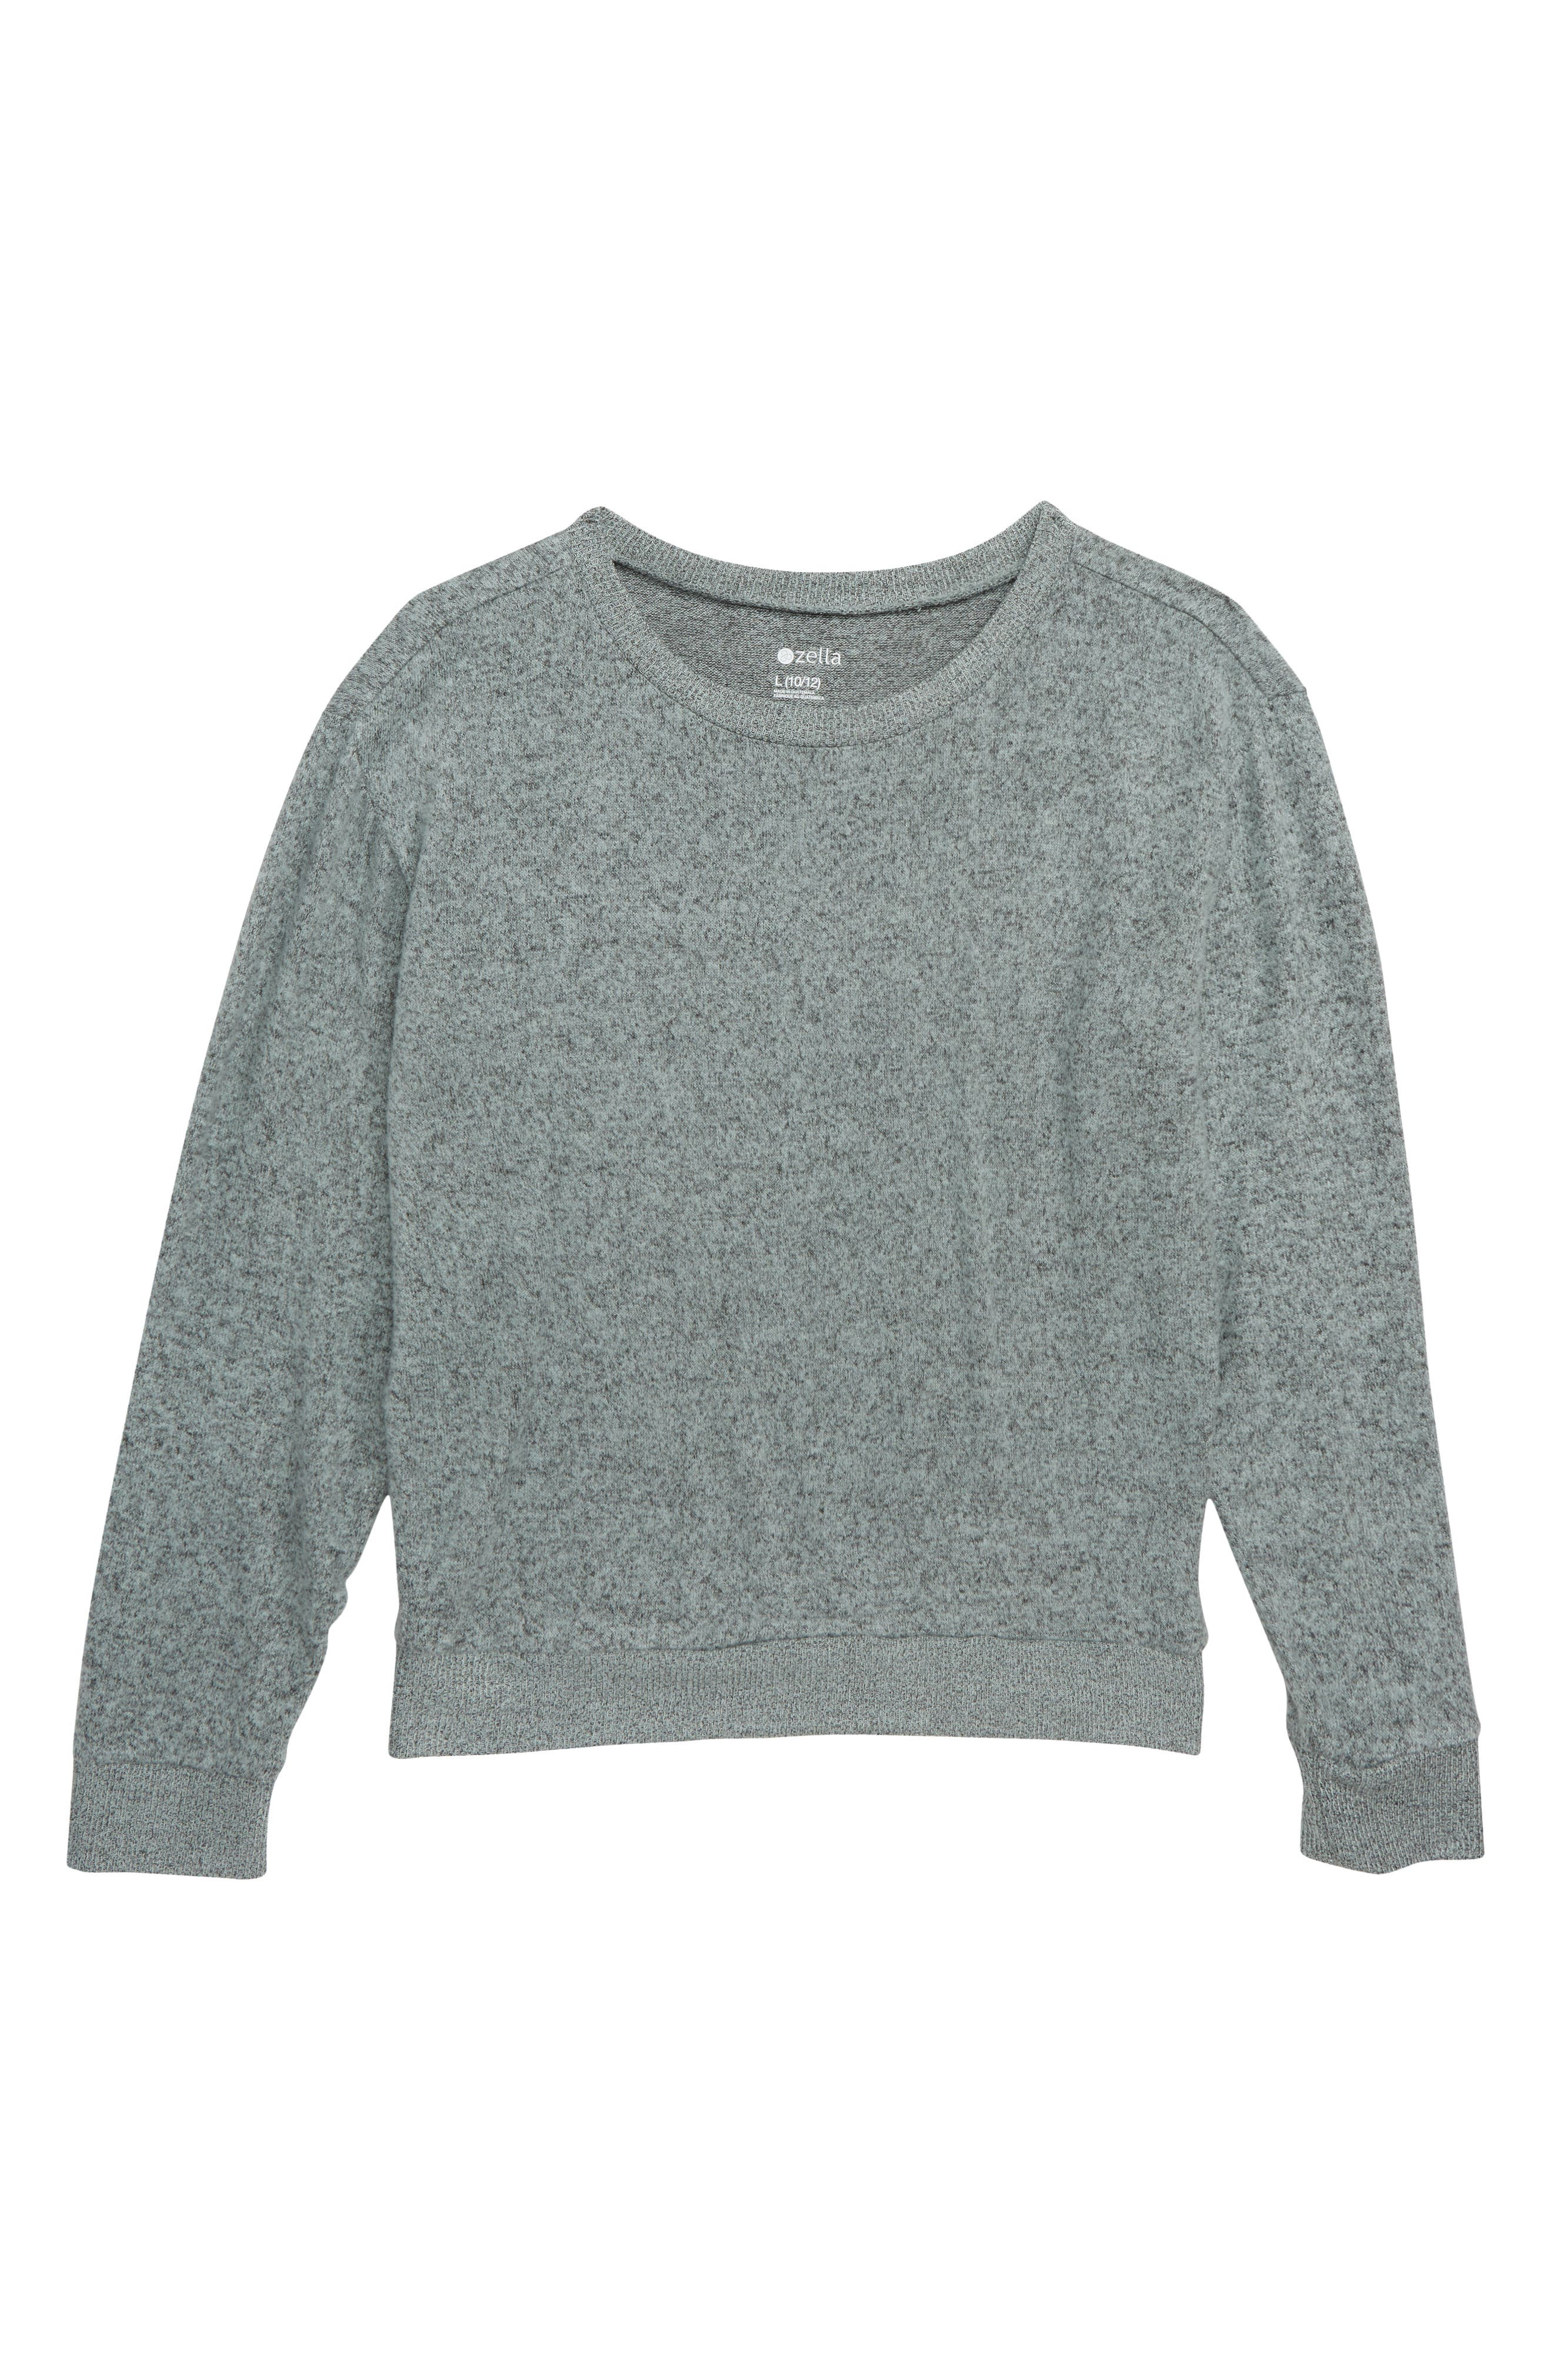 Supersoft Sweater,                             Main thumbnail 1, color,                             BLACK MINT HEATHER